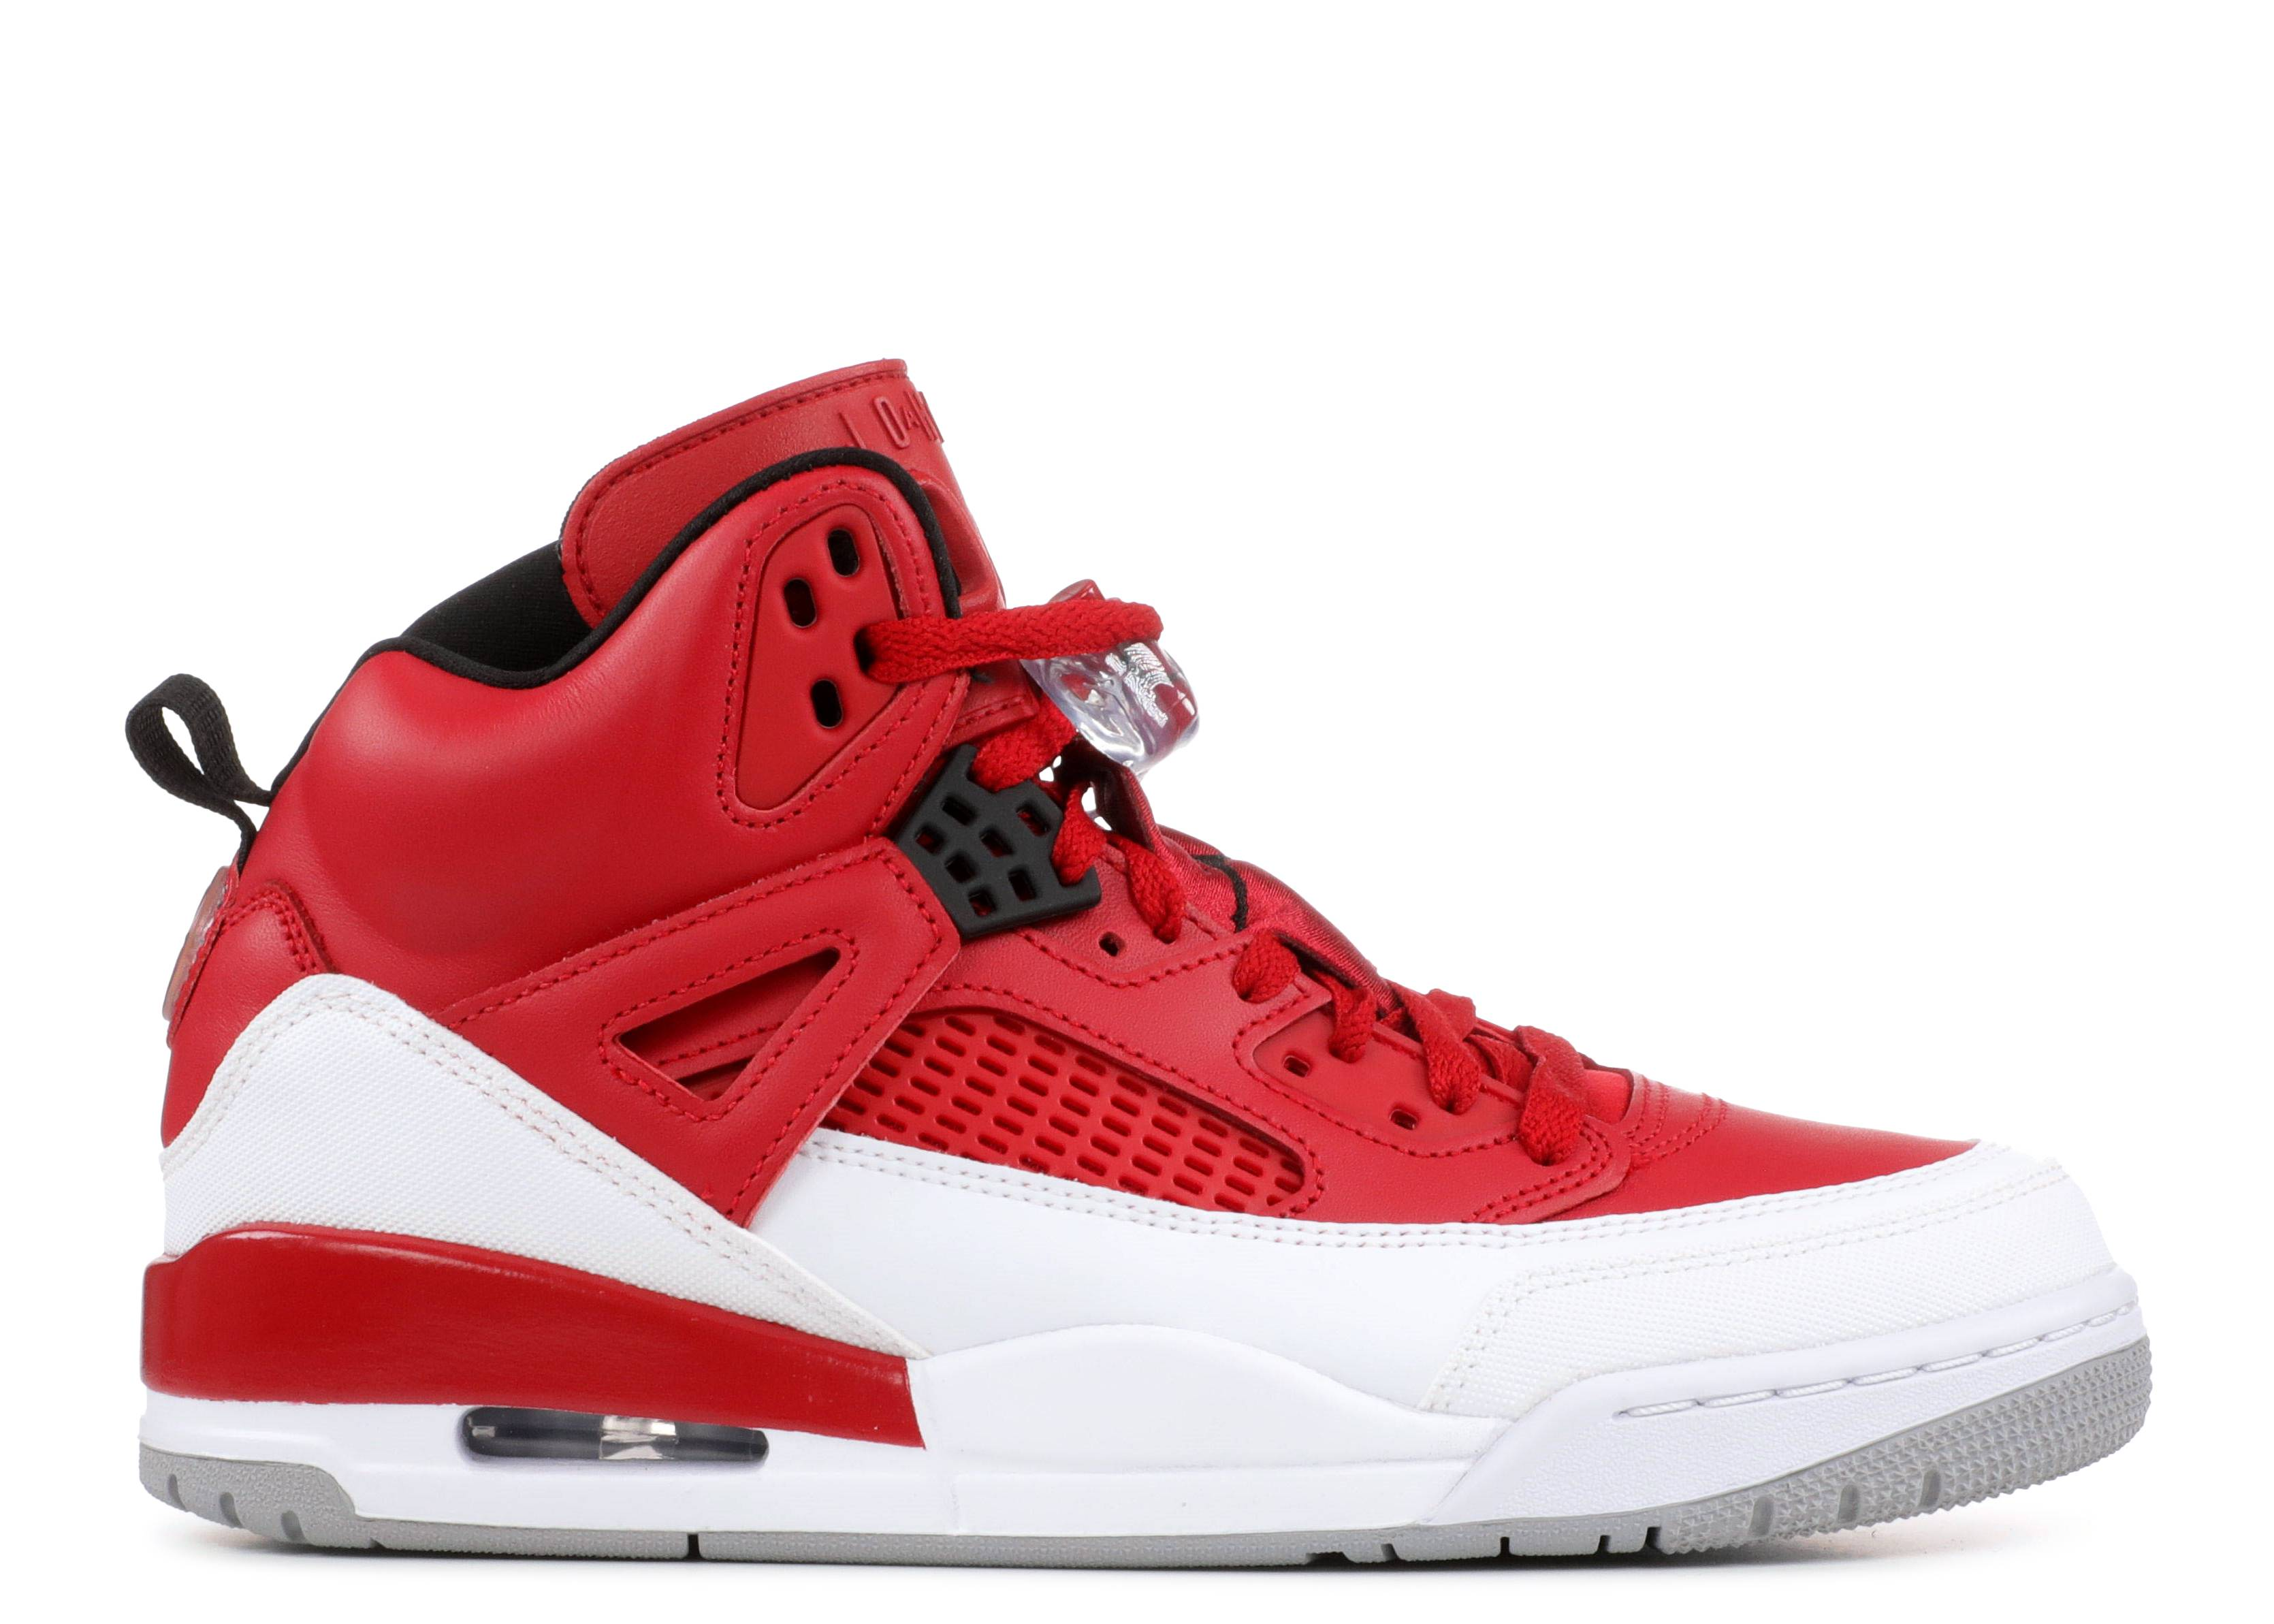 4e68e98f2898 Jordan Spizike - Air Jordan - 315371 603 - gym red black-white-wolf ...